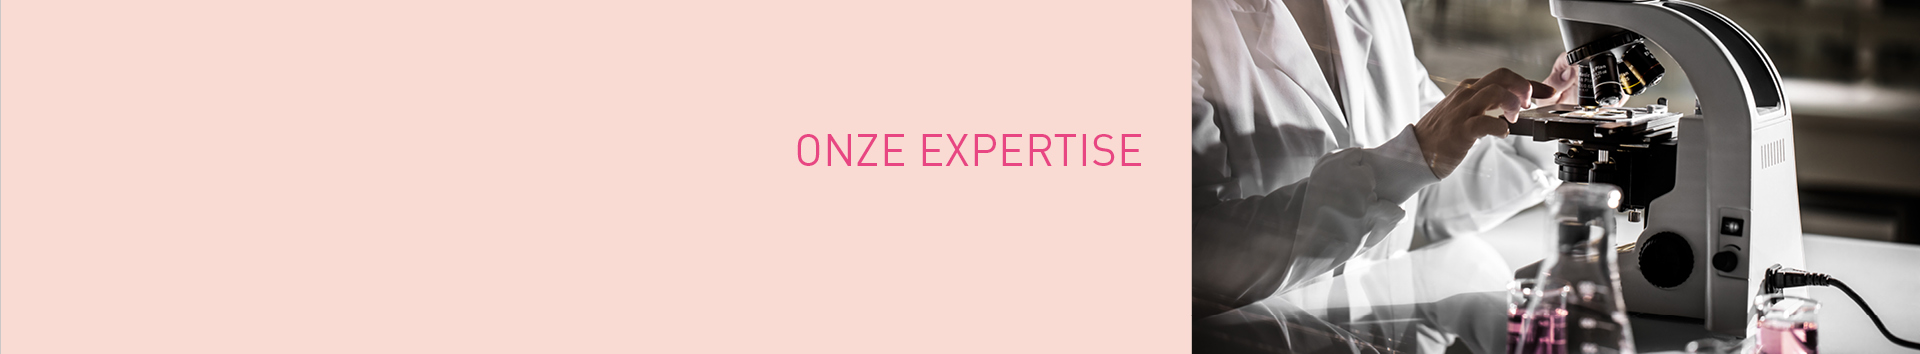 Onze expertise